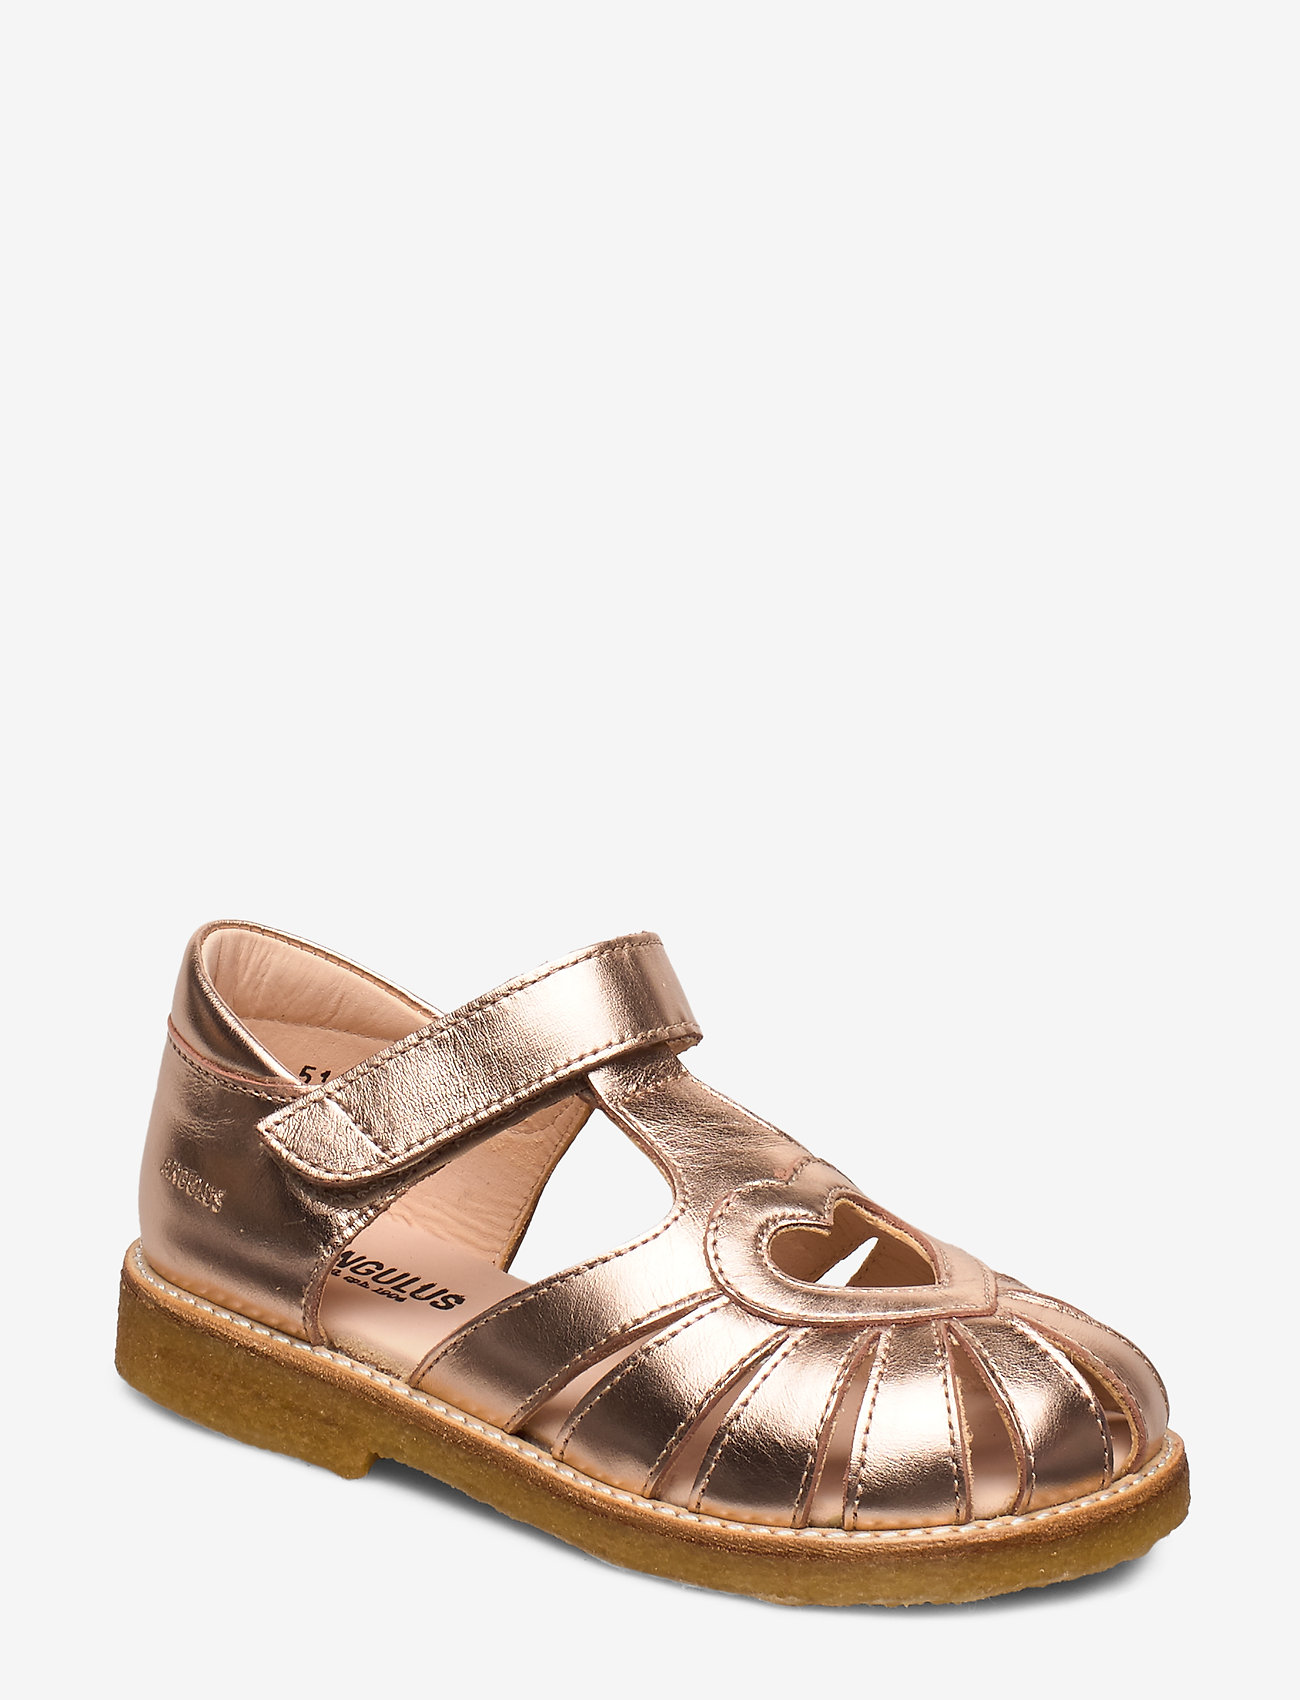 ANGULUS - Sandal with heart detail - sandals - 1311 rose copper